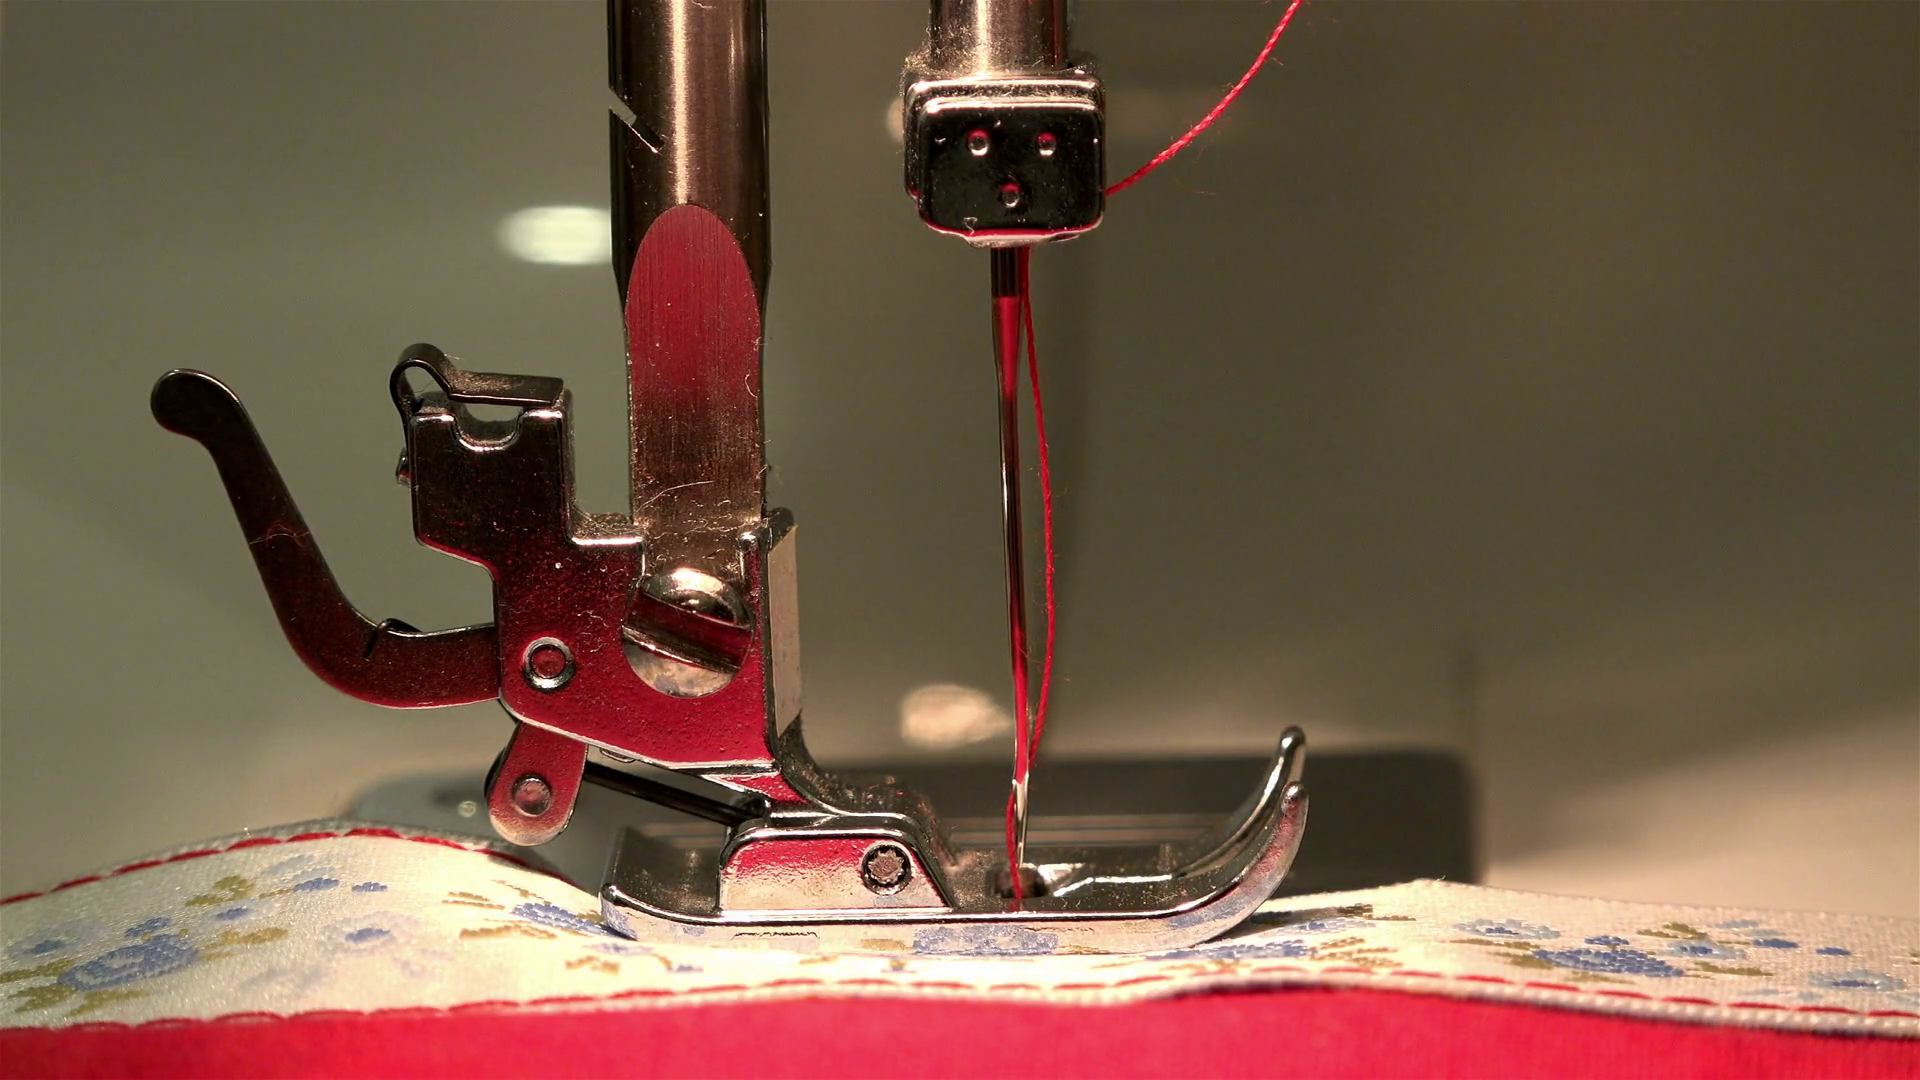 sewing-machine-stitching-on-the-fabric-performs-threading-her-needle-and-thread_brn54oet_thumbnail-full01.png